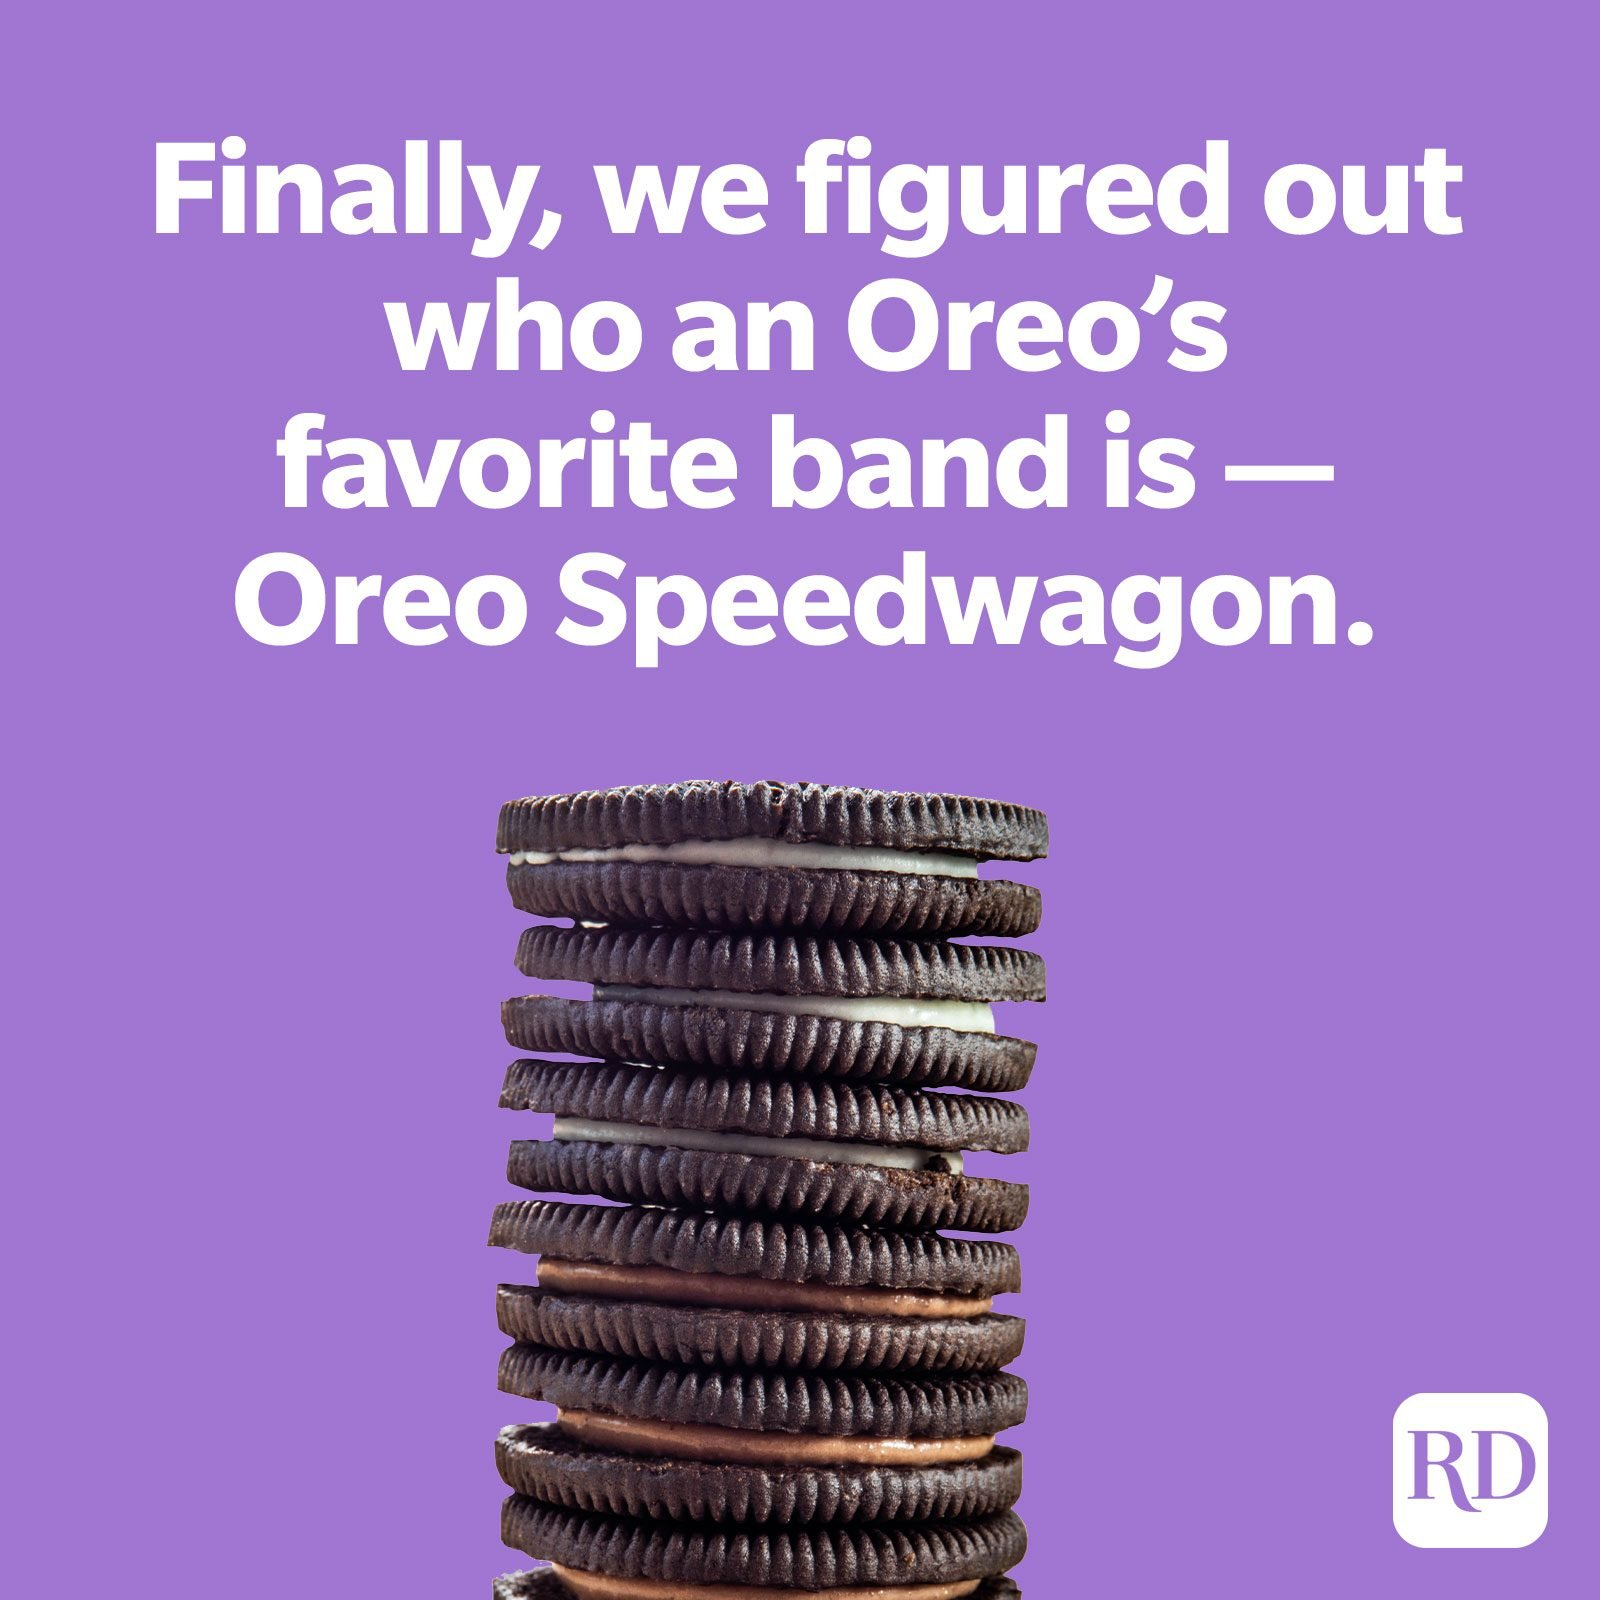 1. Finally, we figured out who an Oreo's favorite band is—Oreo Speedwagon.